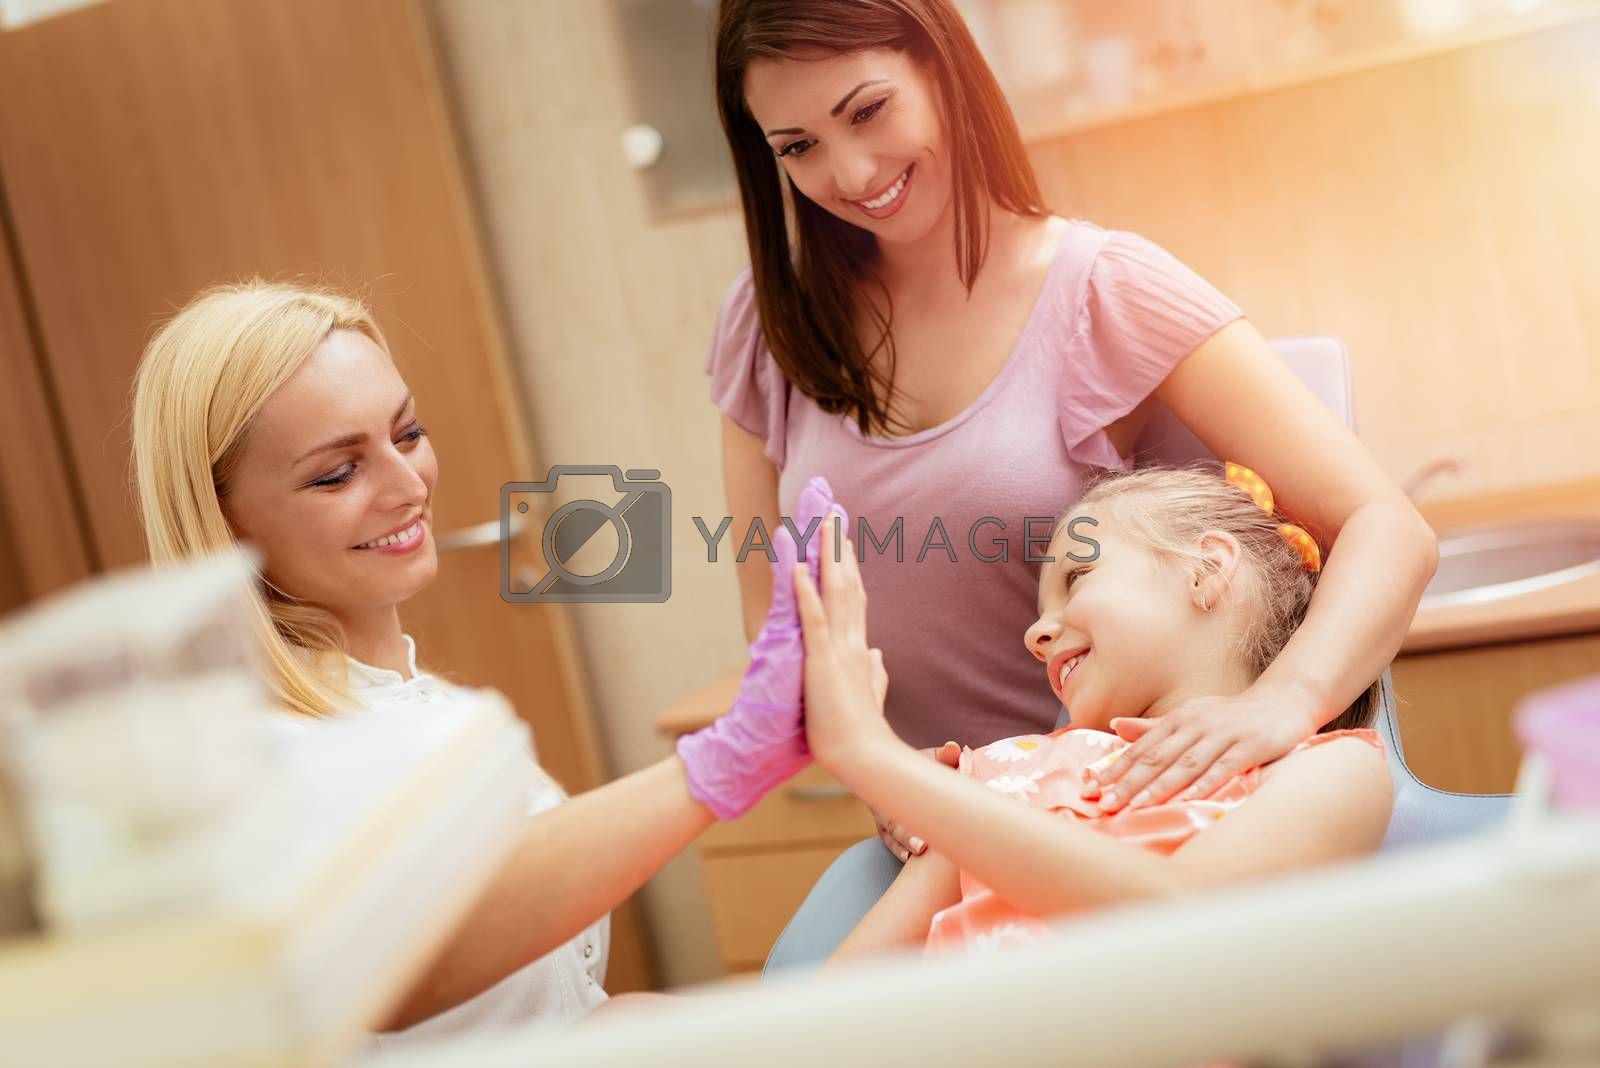 Beautiful little girl at visit in the dentist office. She and female dentist greeting and having fun.